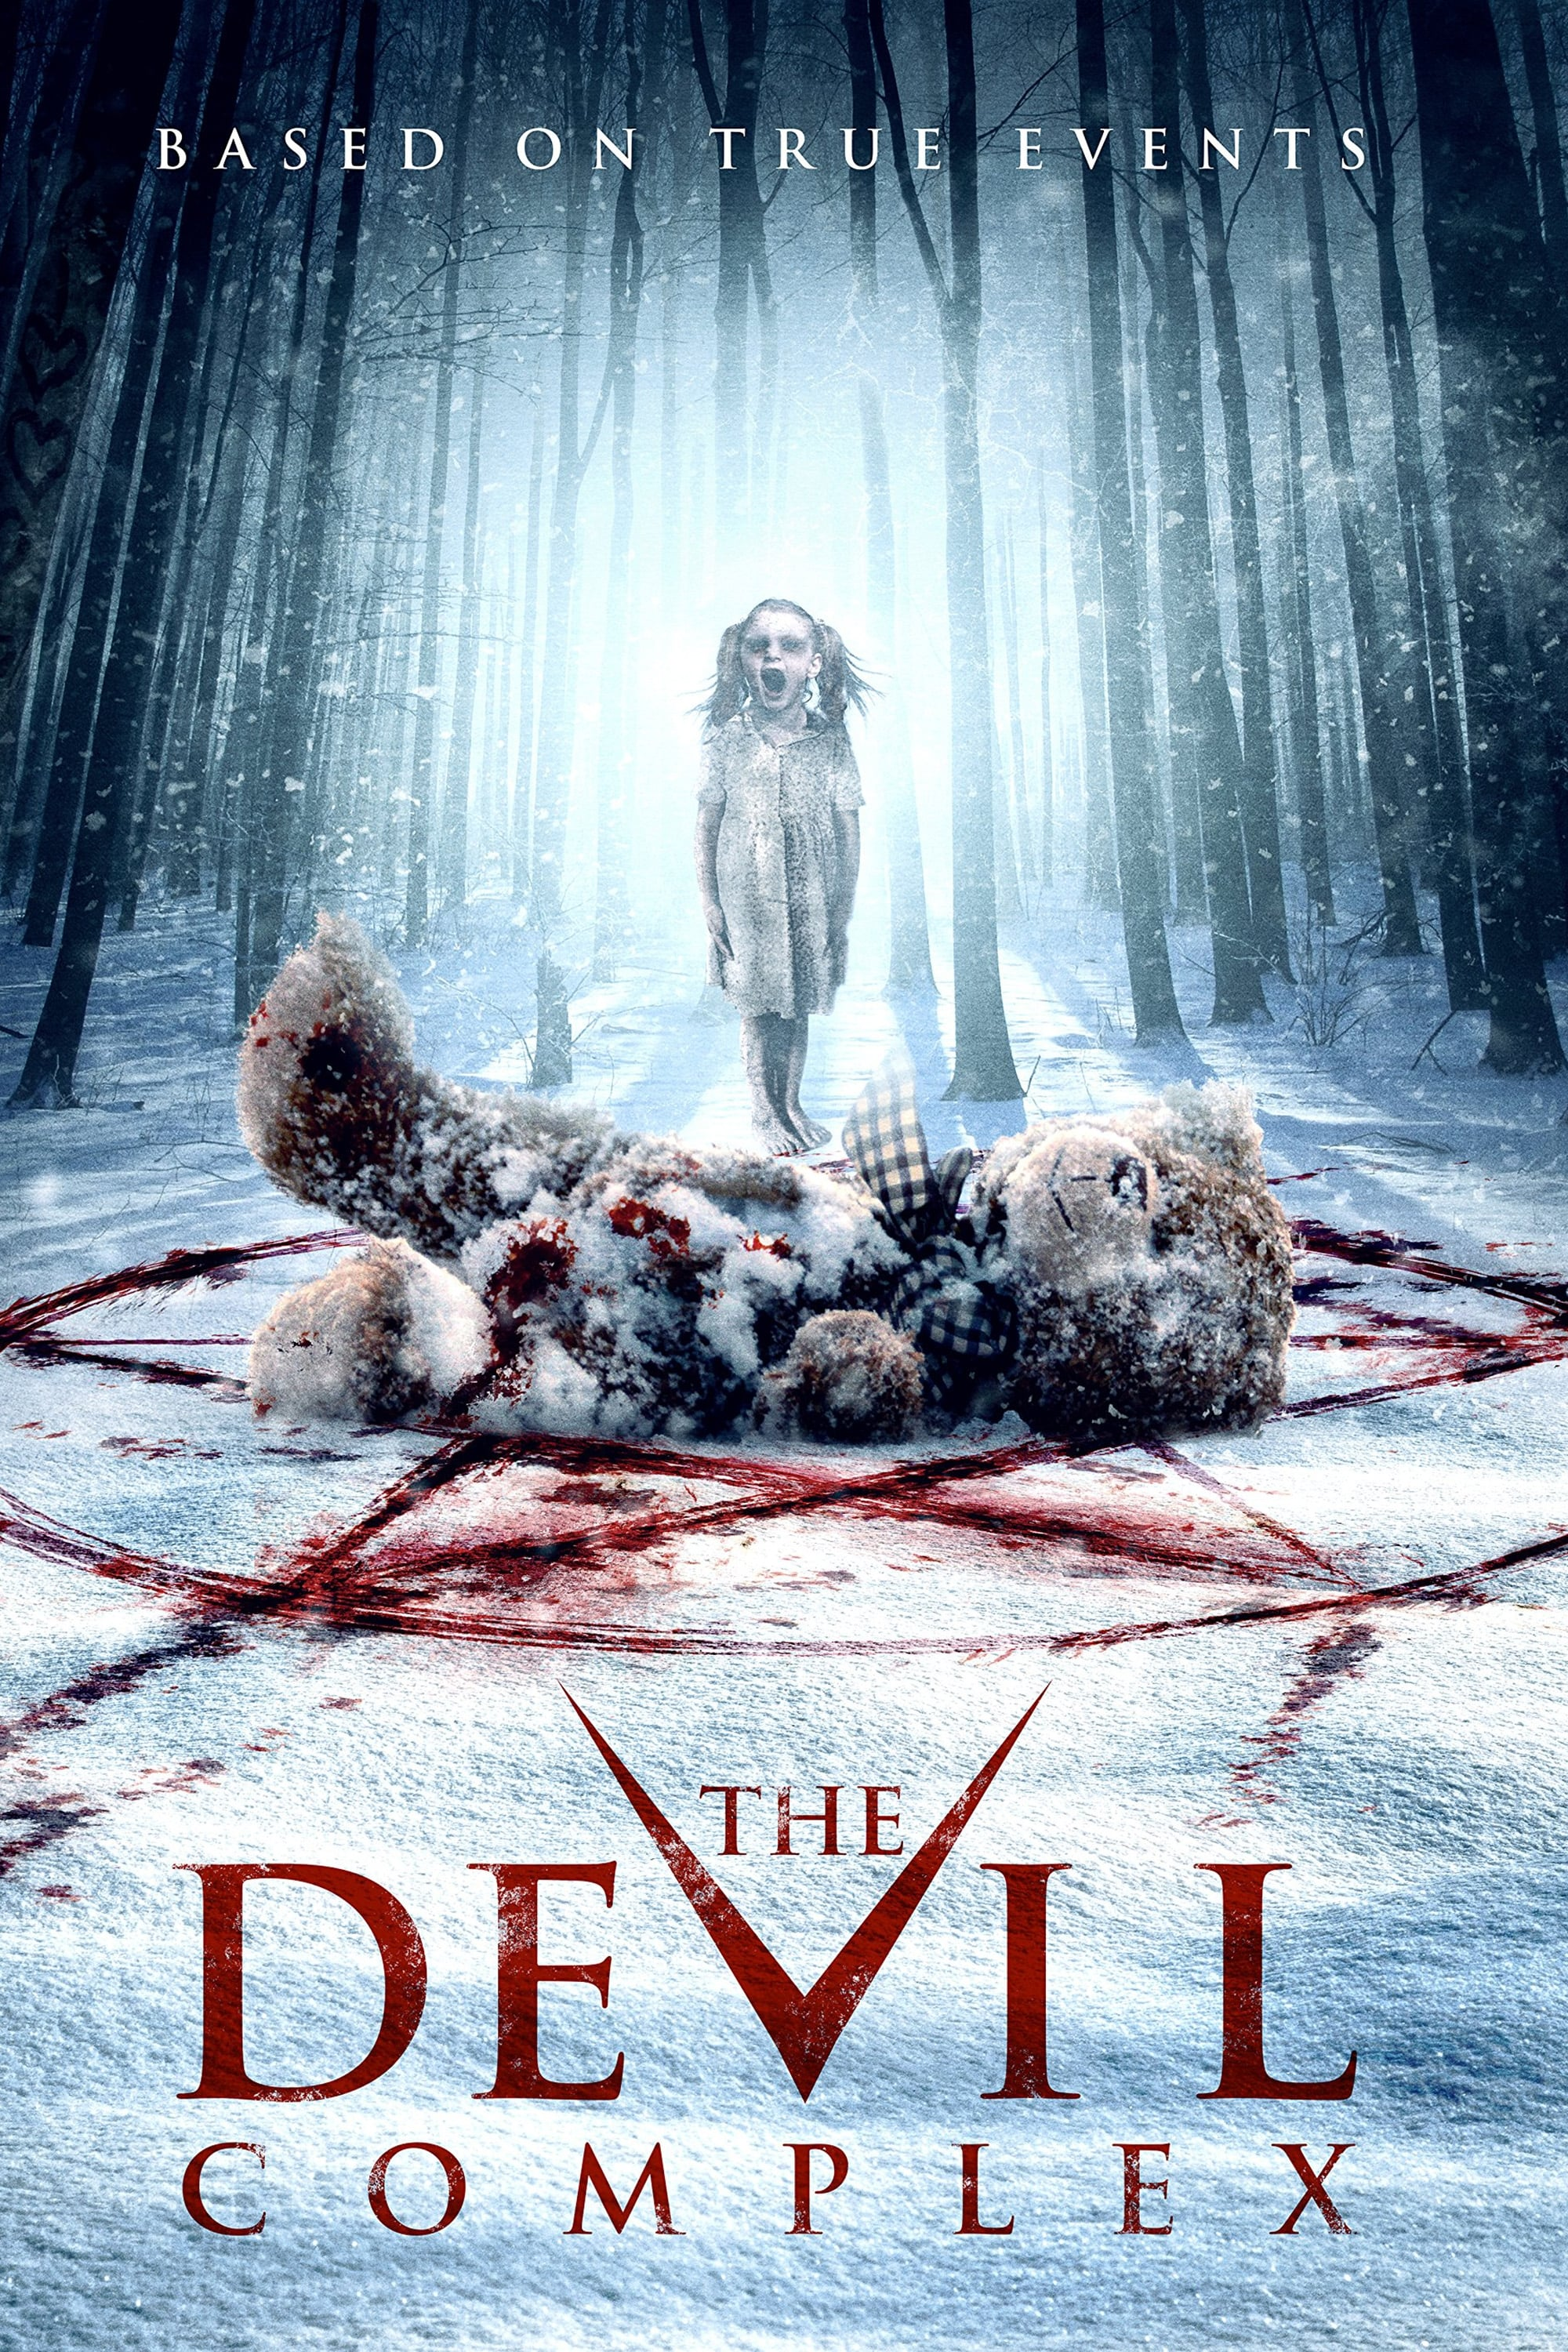 The Devil Complex Película Completa HD 720p [MEGA] [LATINO] 2016